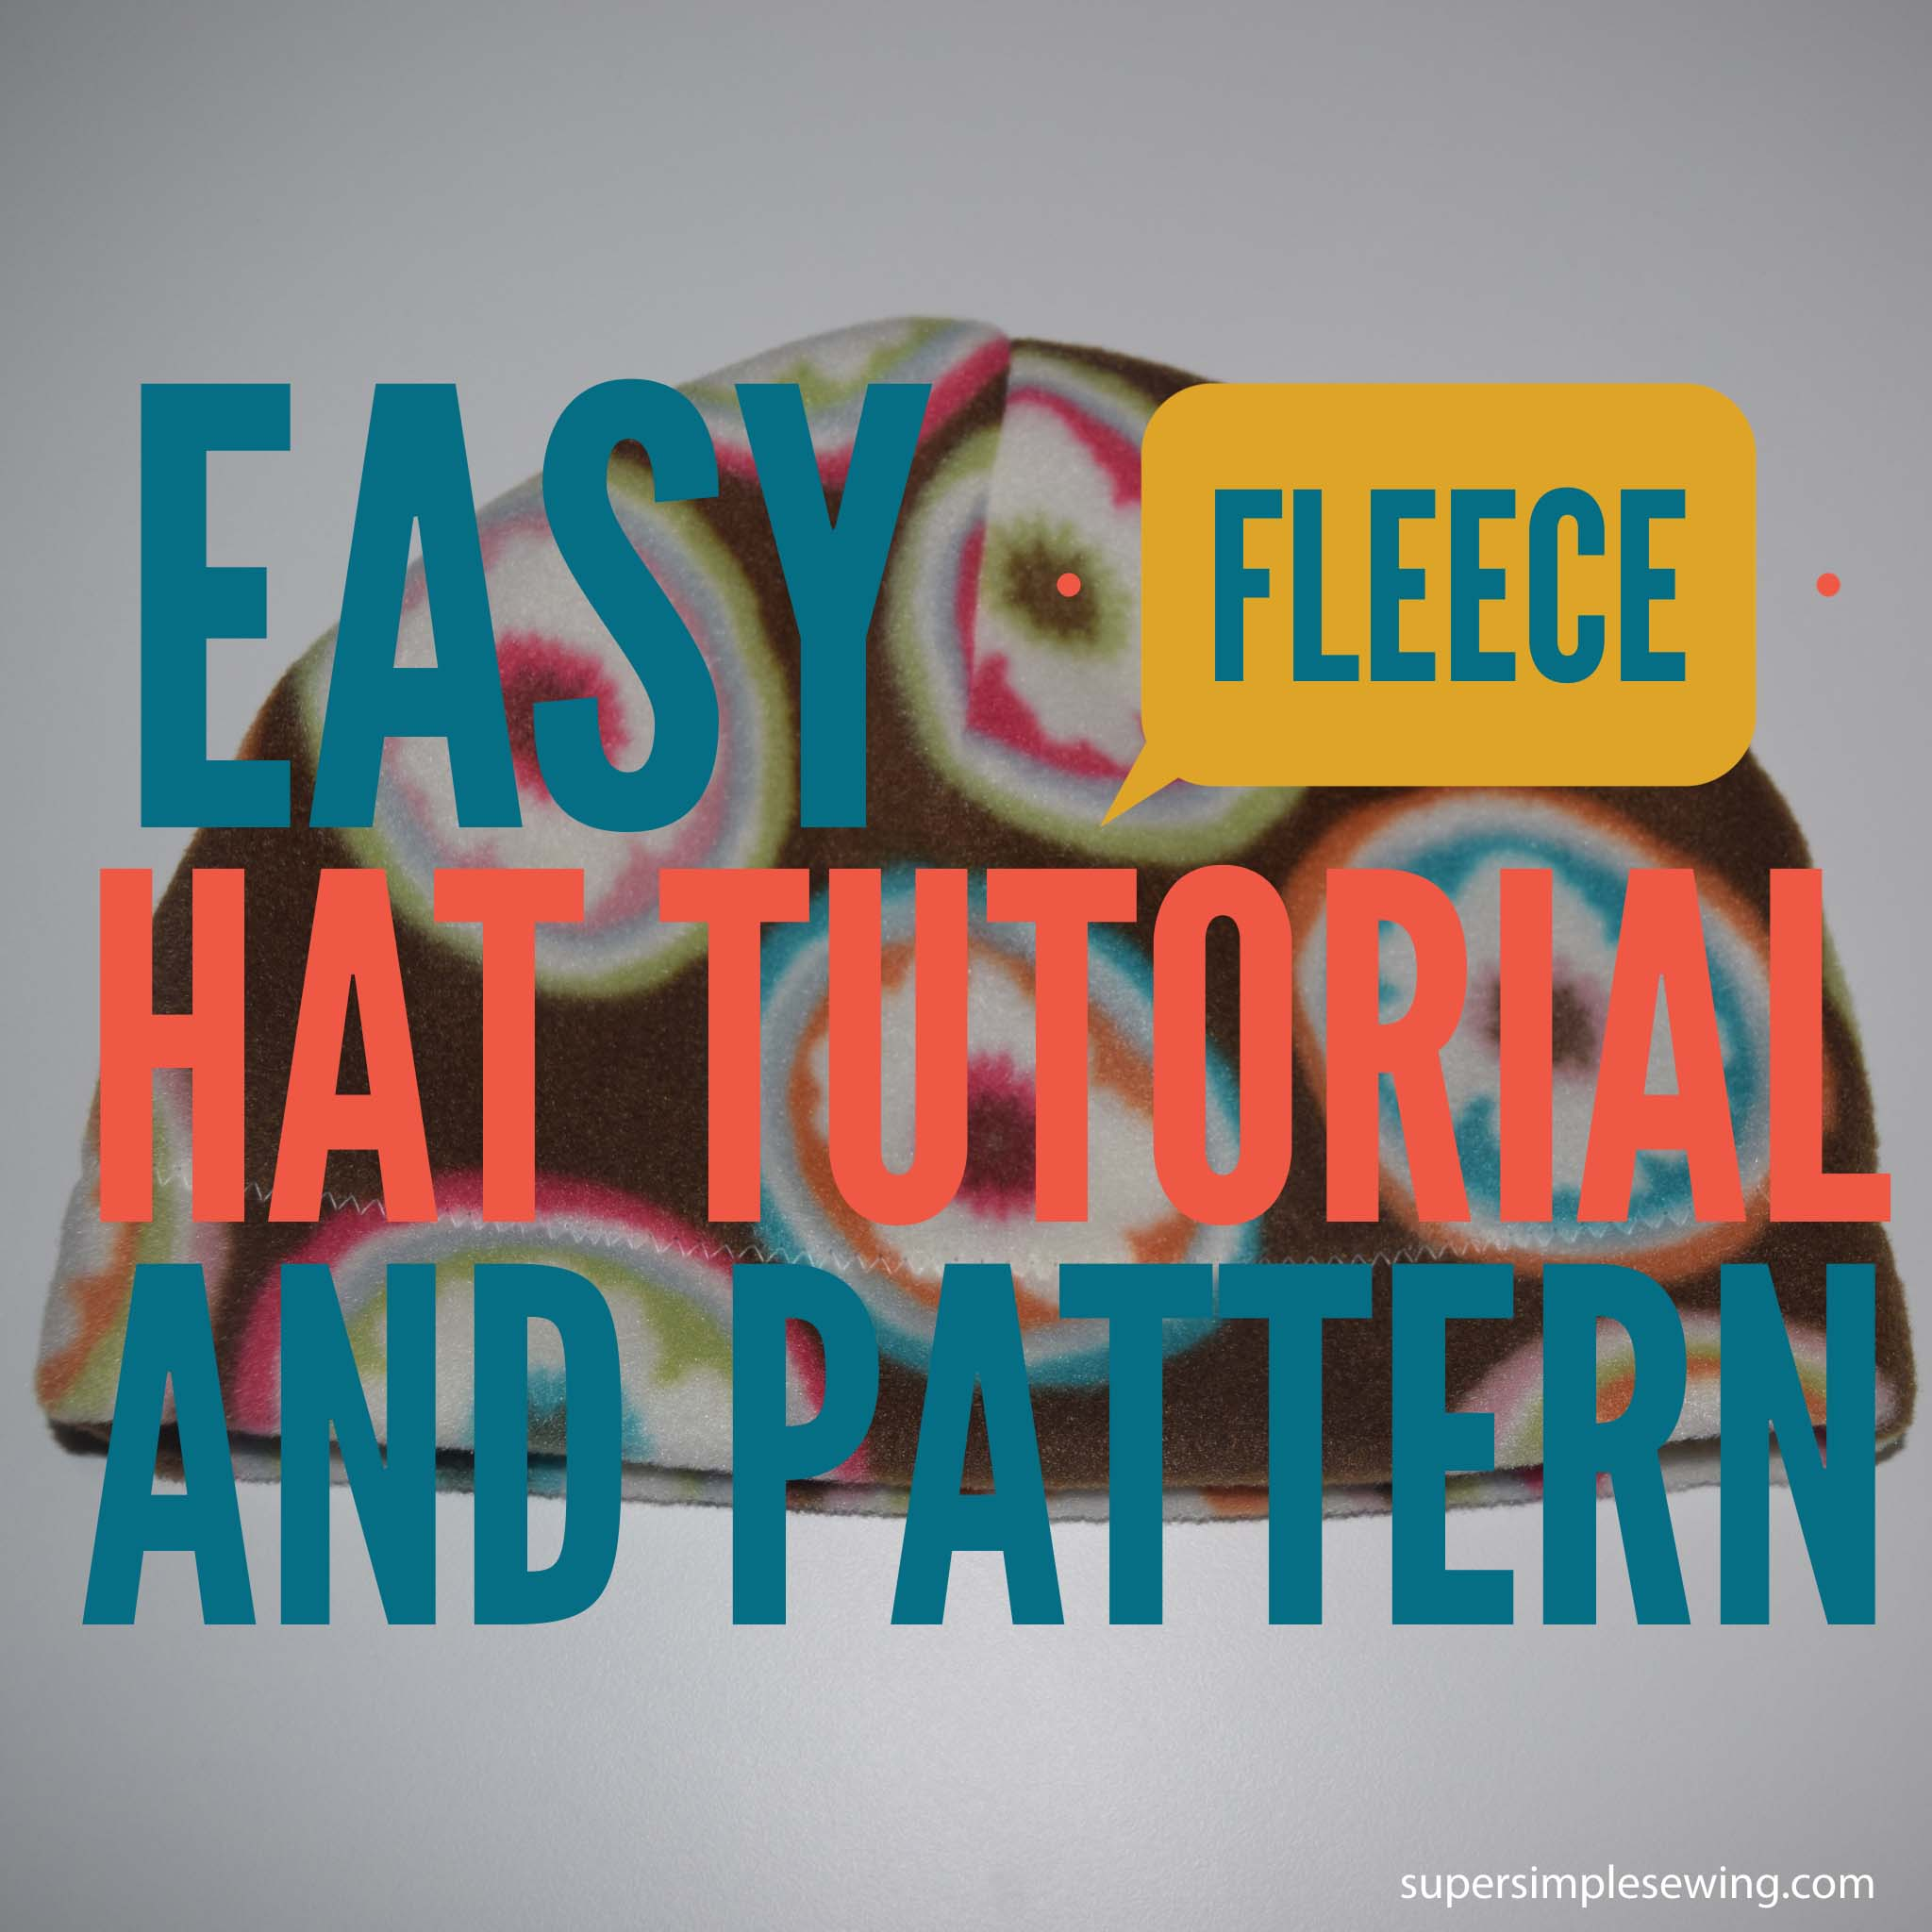 c2efe295c73ef7 Easy Fleece Hat Tutorial and Pattern with Tips for Polar Fleece